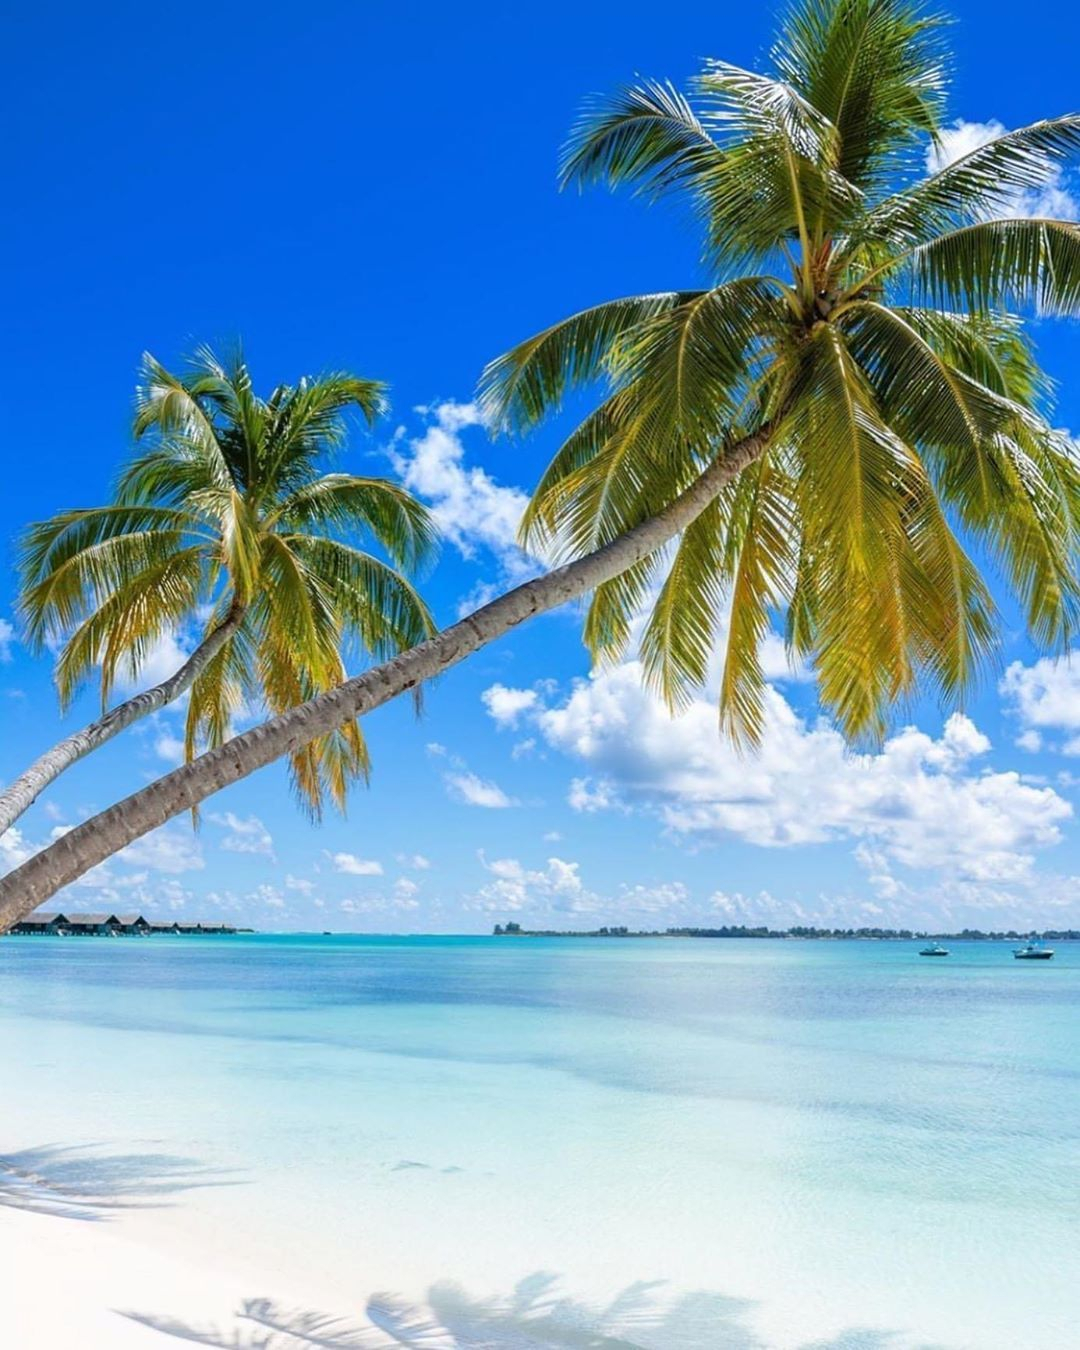 Top 10 Most Beautiful Beaches In The World With Images